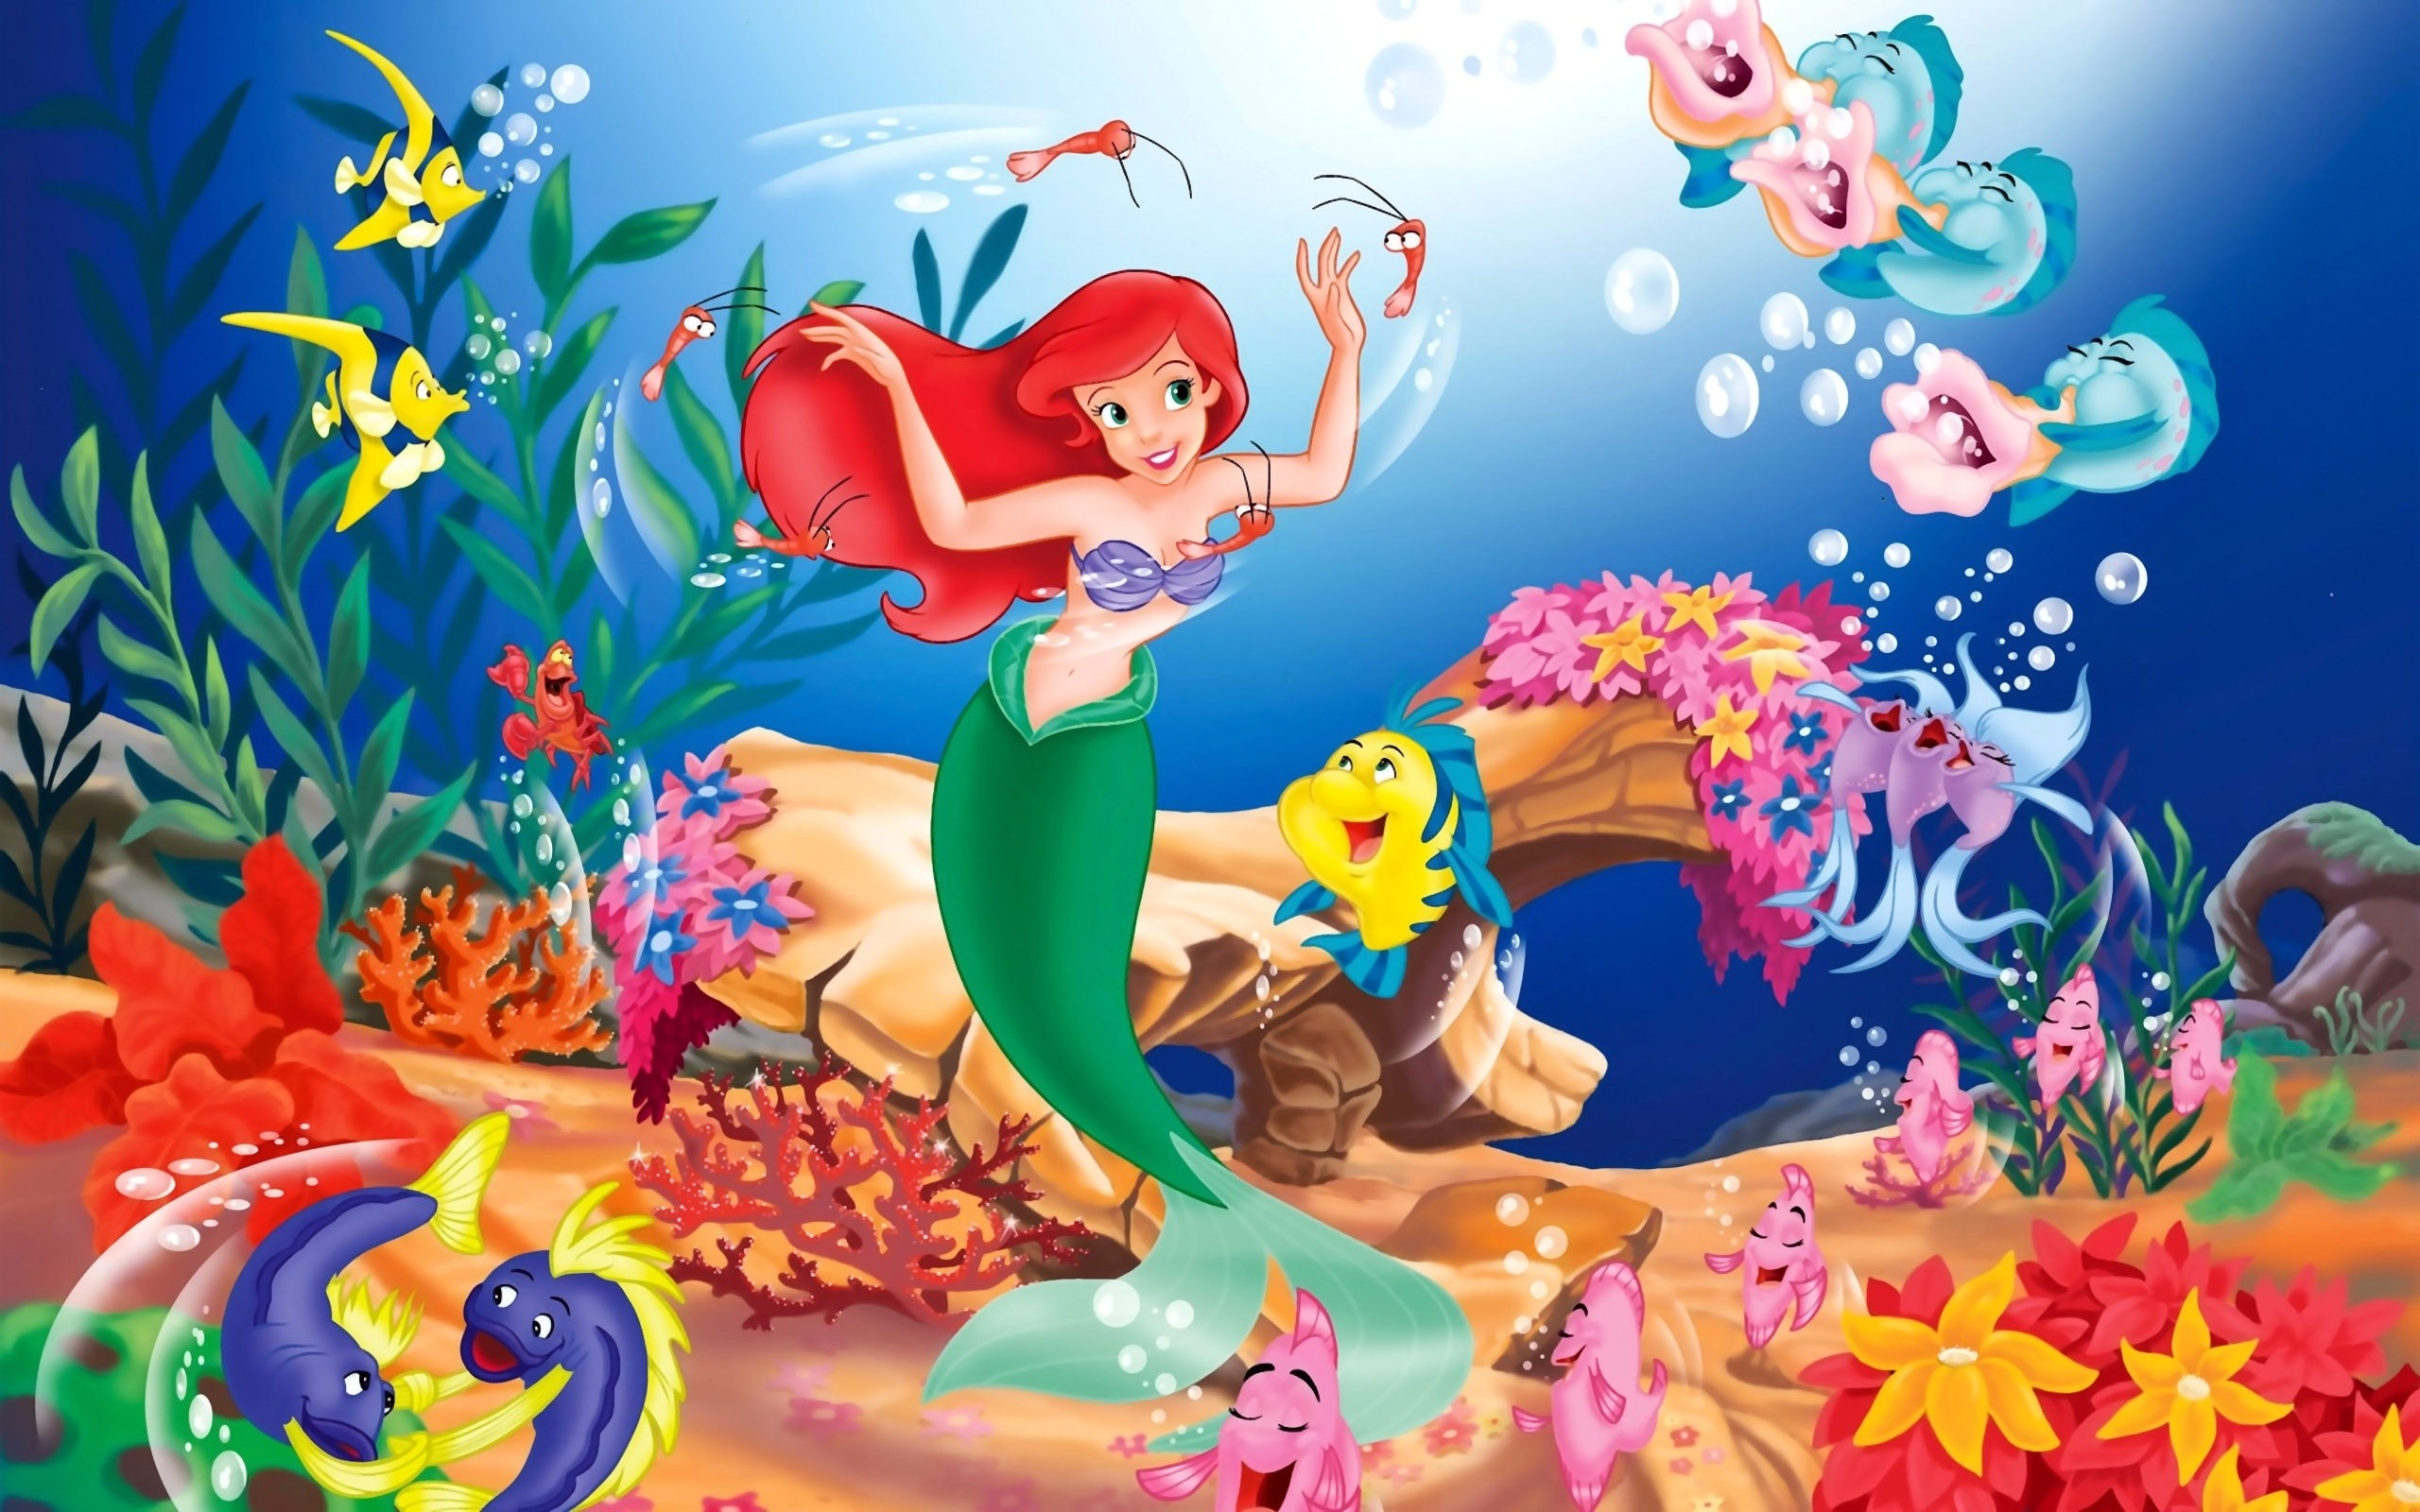 64 Disney wallpapers ·â' Download free amazing full HD wallpapers